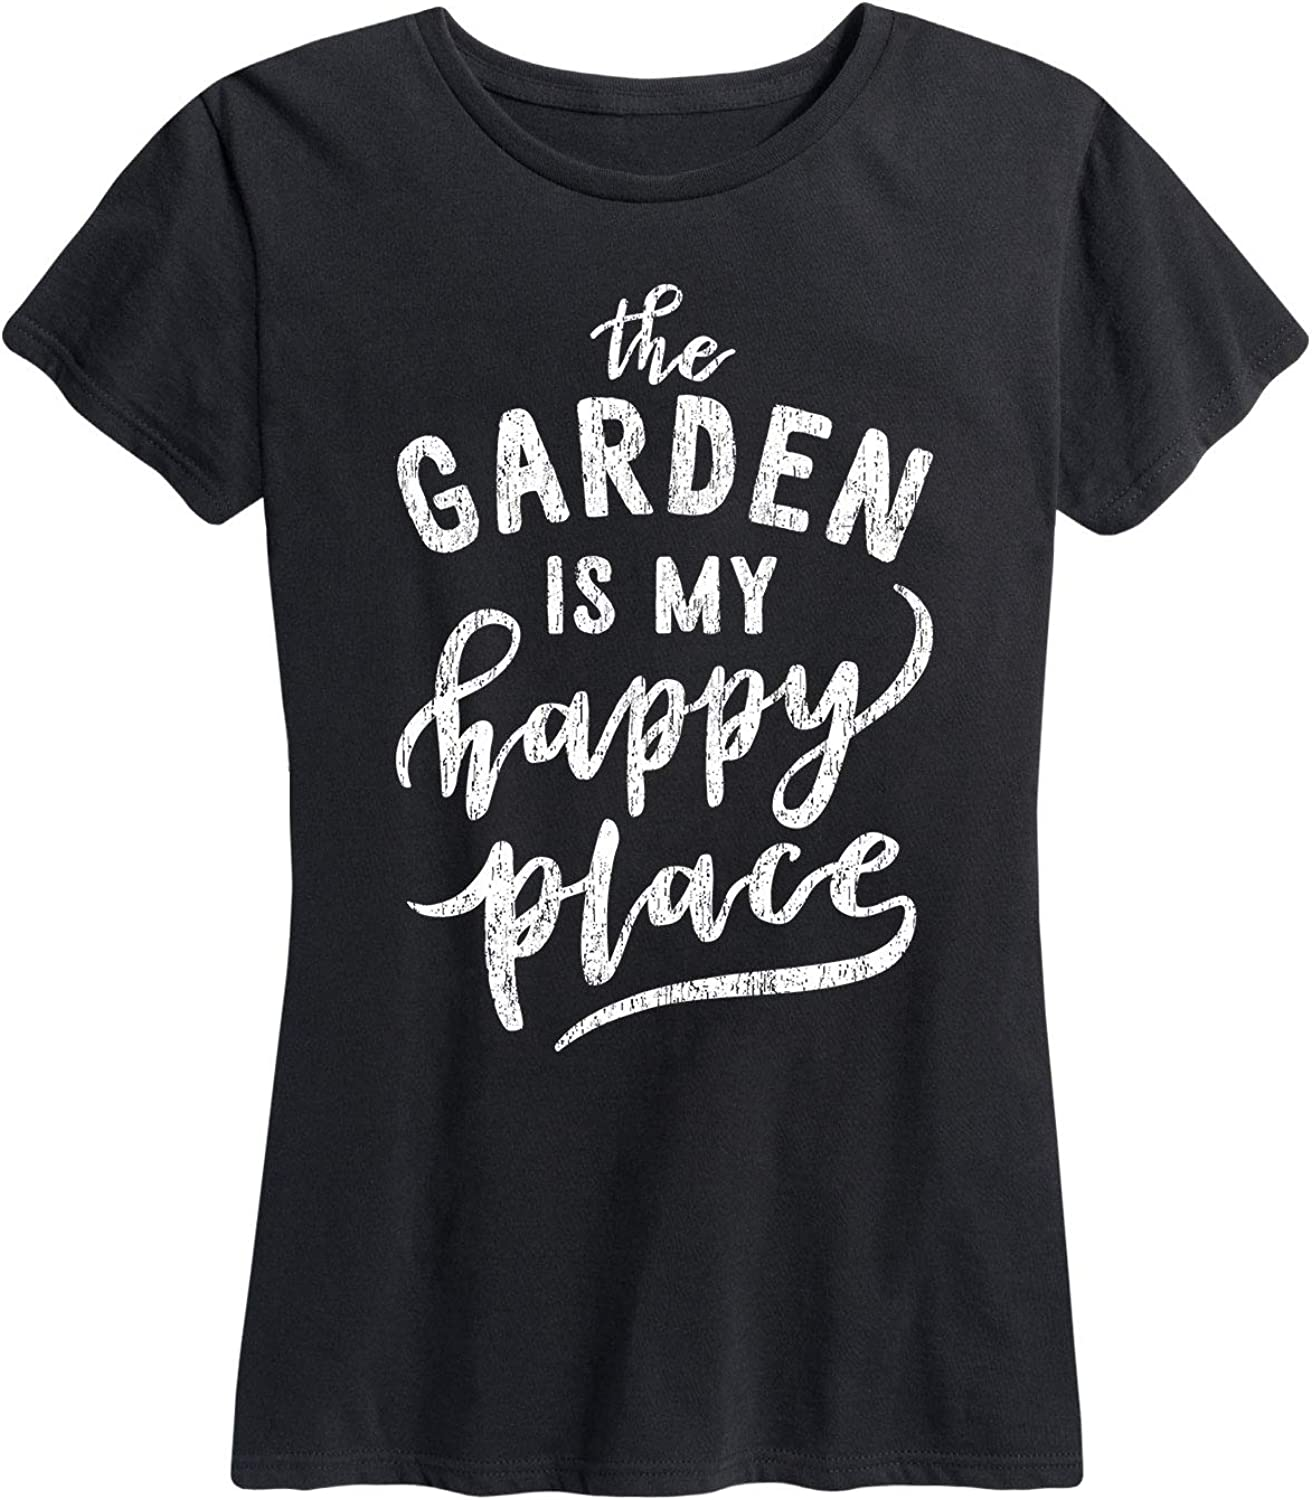 Instant Message The Garden is My Happy Place - Women's Short Sleeve Graphic T-Shirt